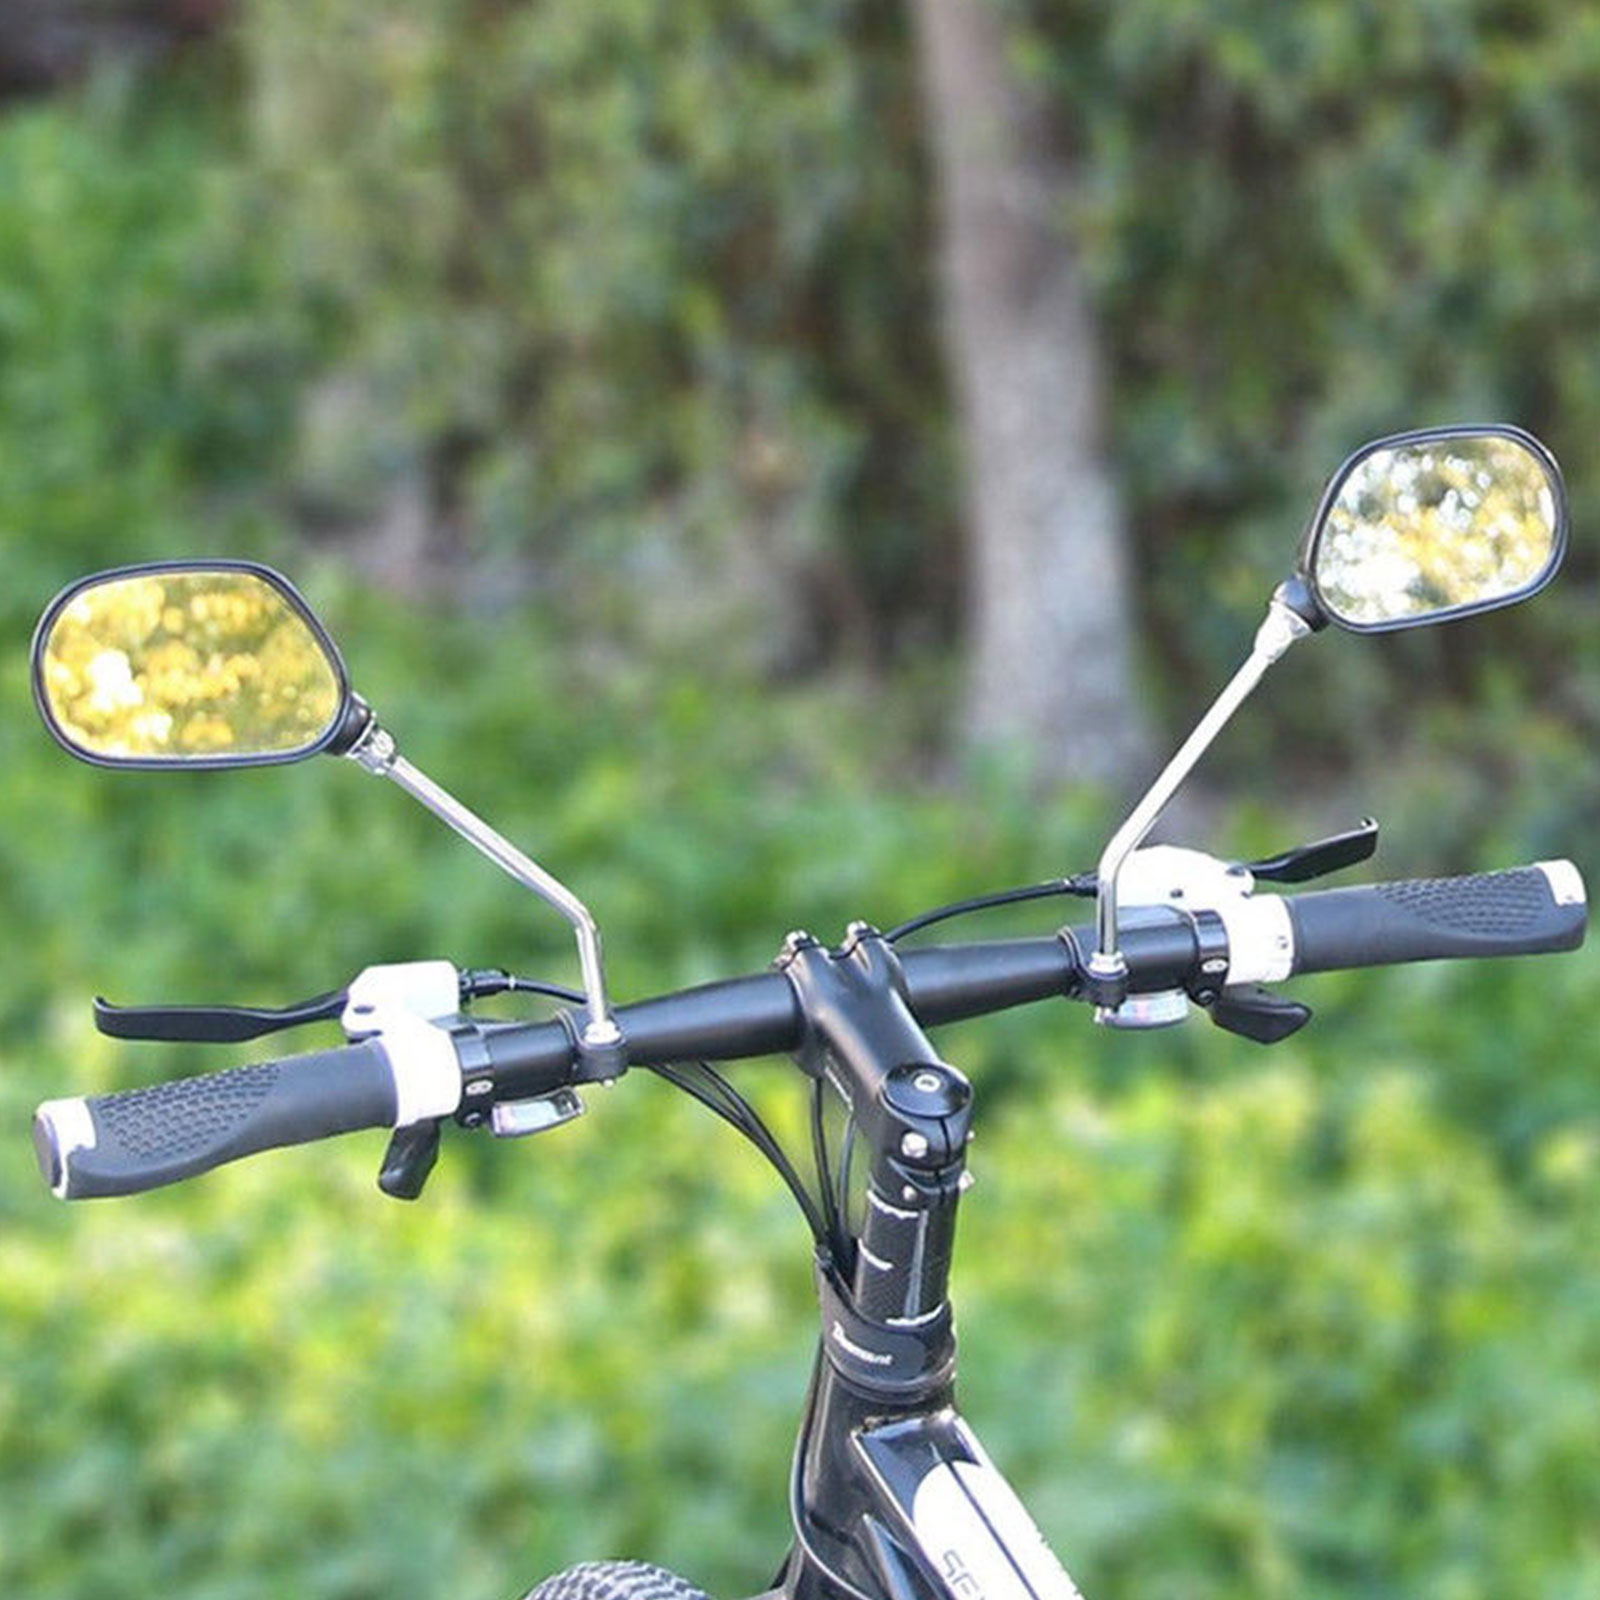 DEWIN Bicycle Rear View Mirror Flexible Bike Handlebar Rear View Mirror with Rotatable Angle Side Mirror for Bicycle